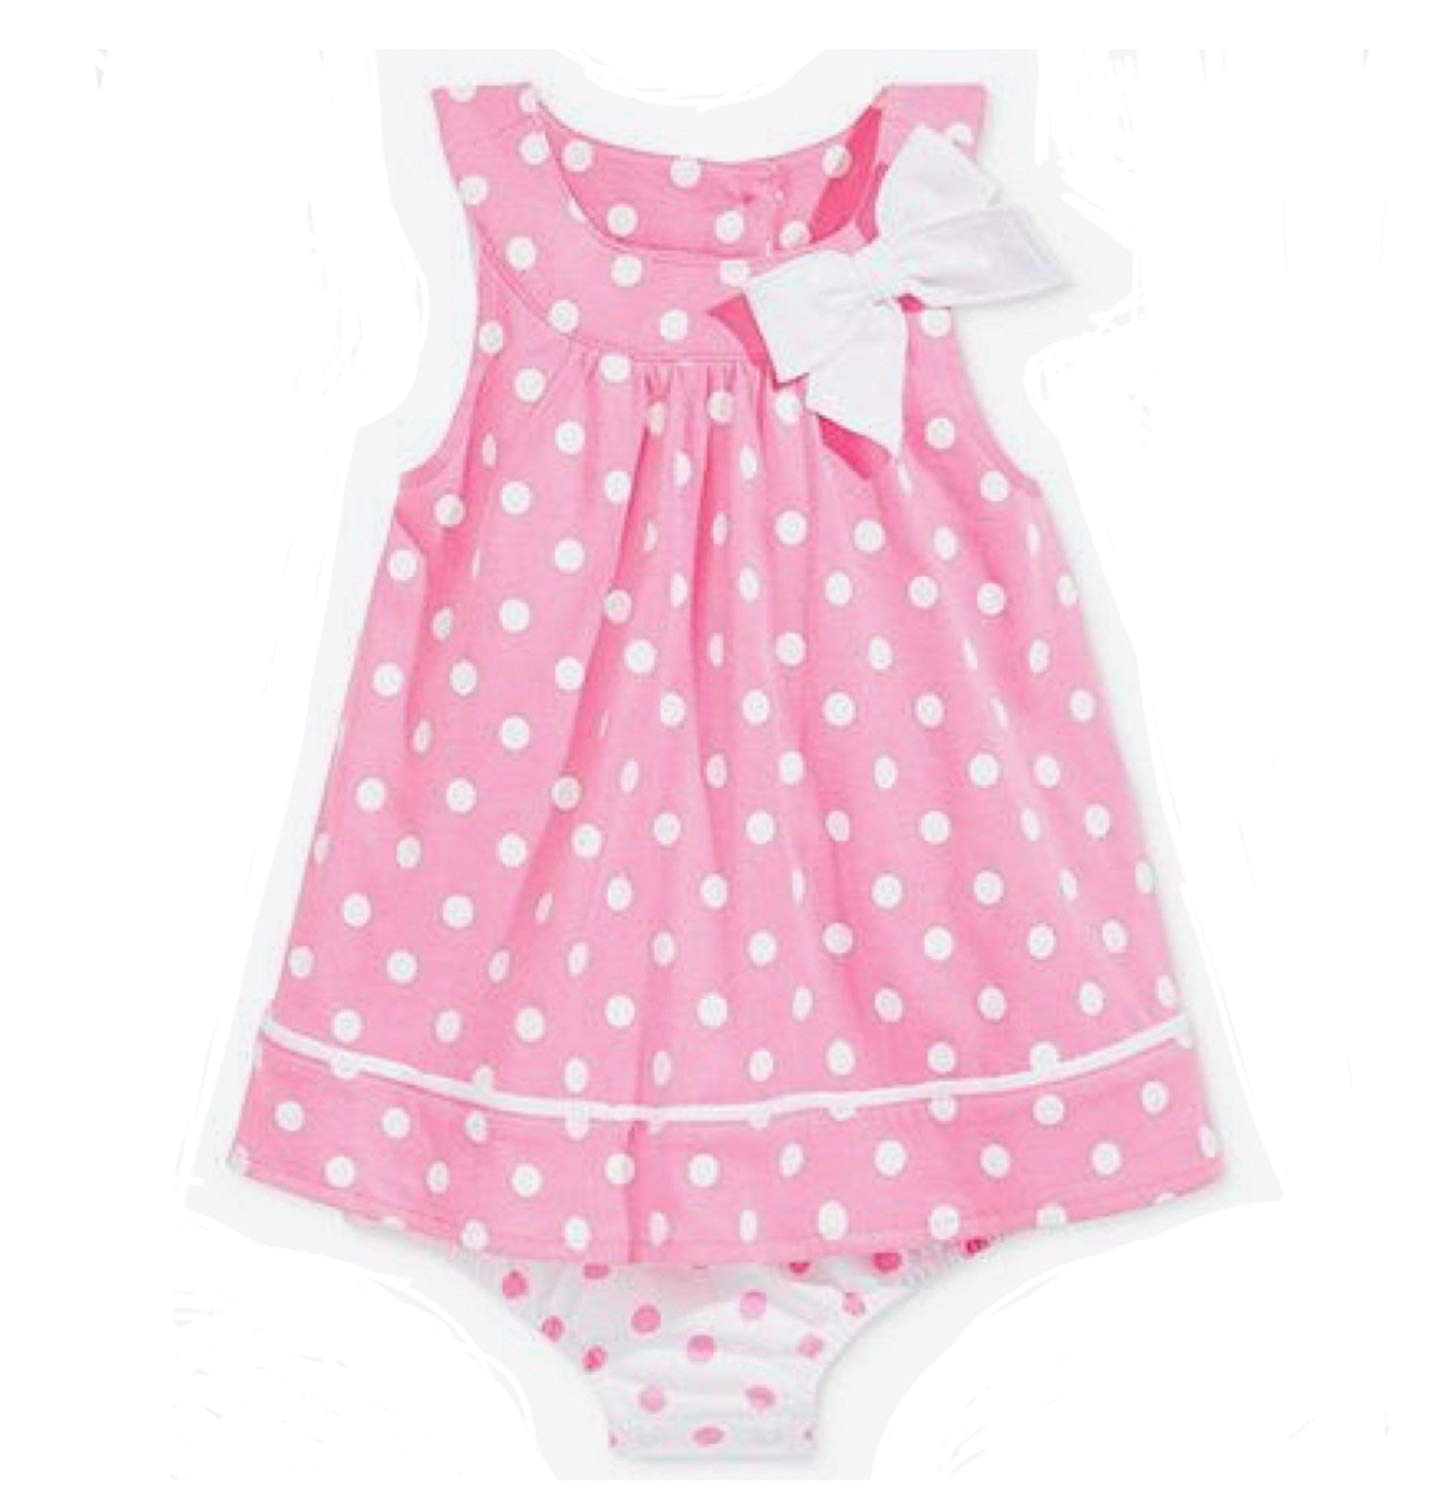 4fbeab106c11 Get Quotations · First Impressions Baby Girl Sunsuit Pink with White Polka  Dots 24m